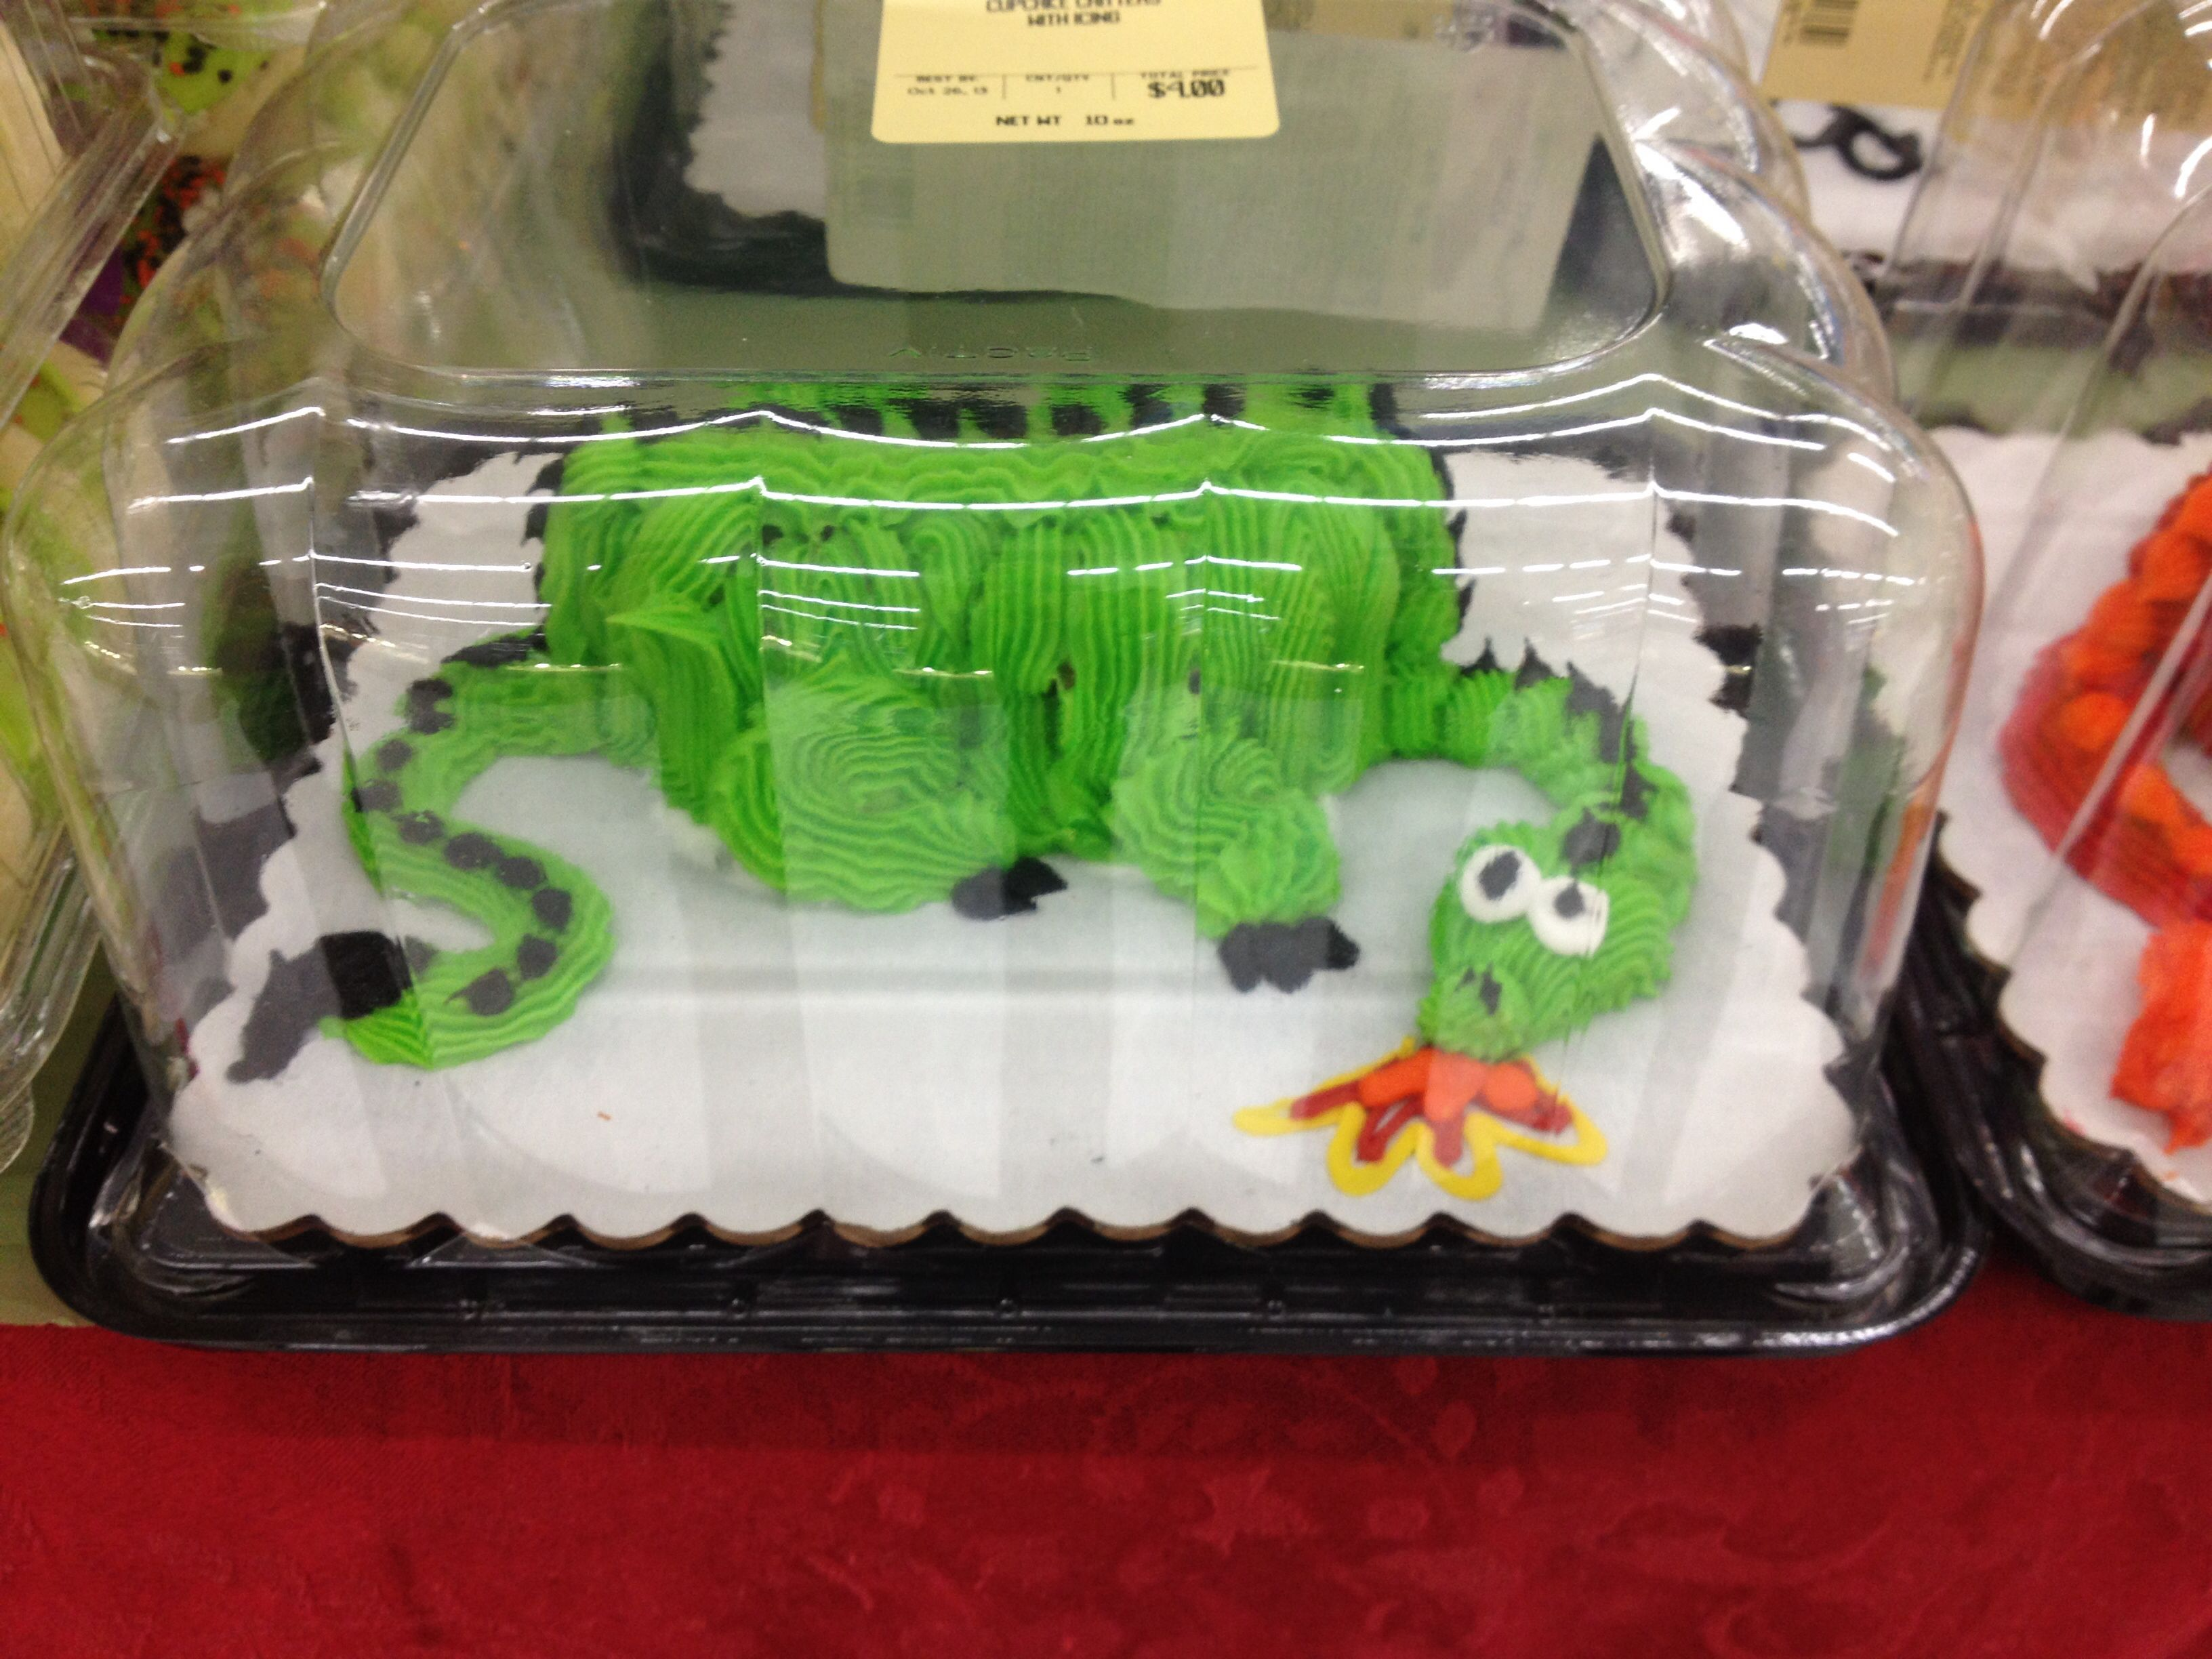 Cupcake Critter At Walmart This One Is Perfectly Theo Pendragon Because Its Green I HAD To Have It My Husband Just Rolled His Eyes